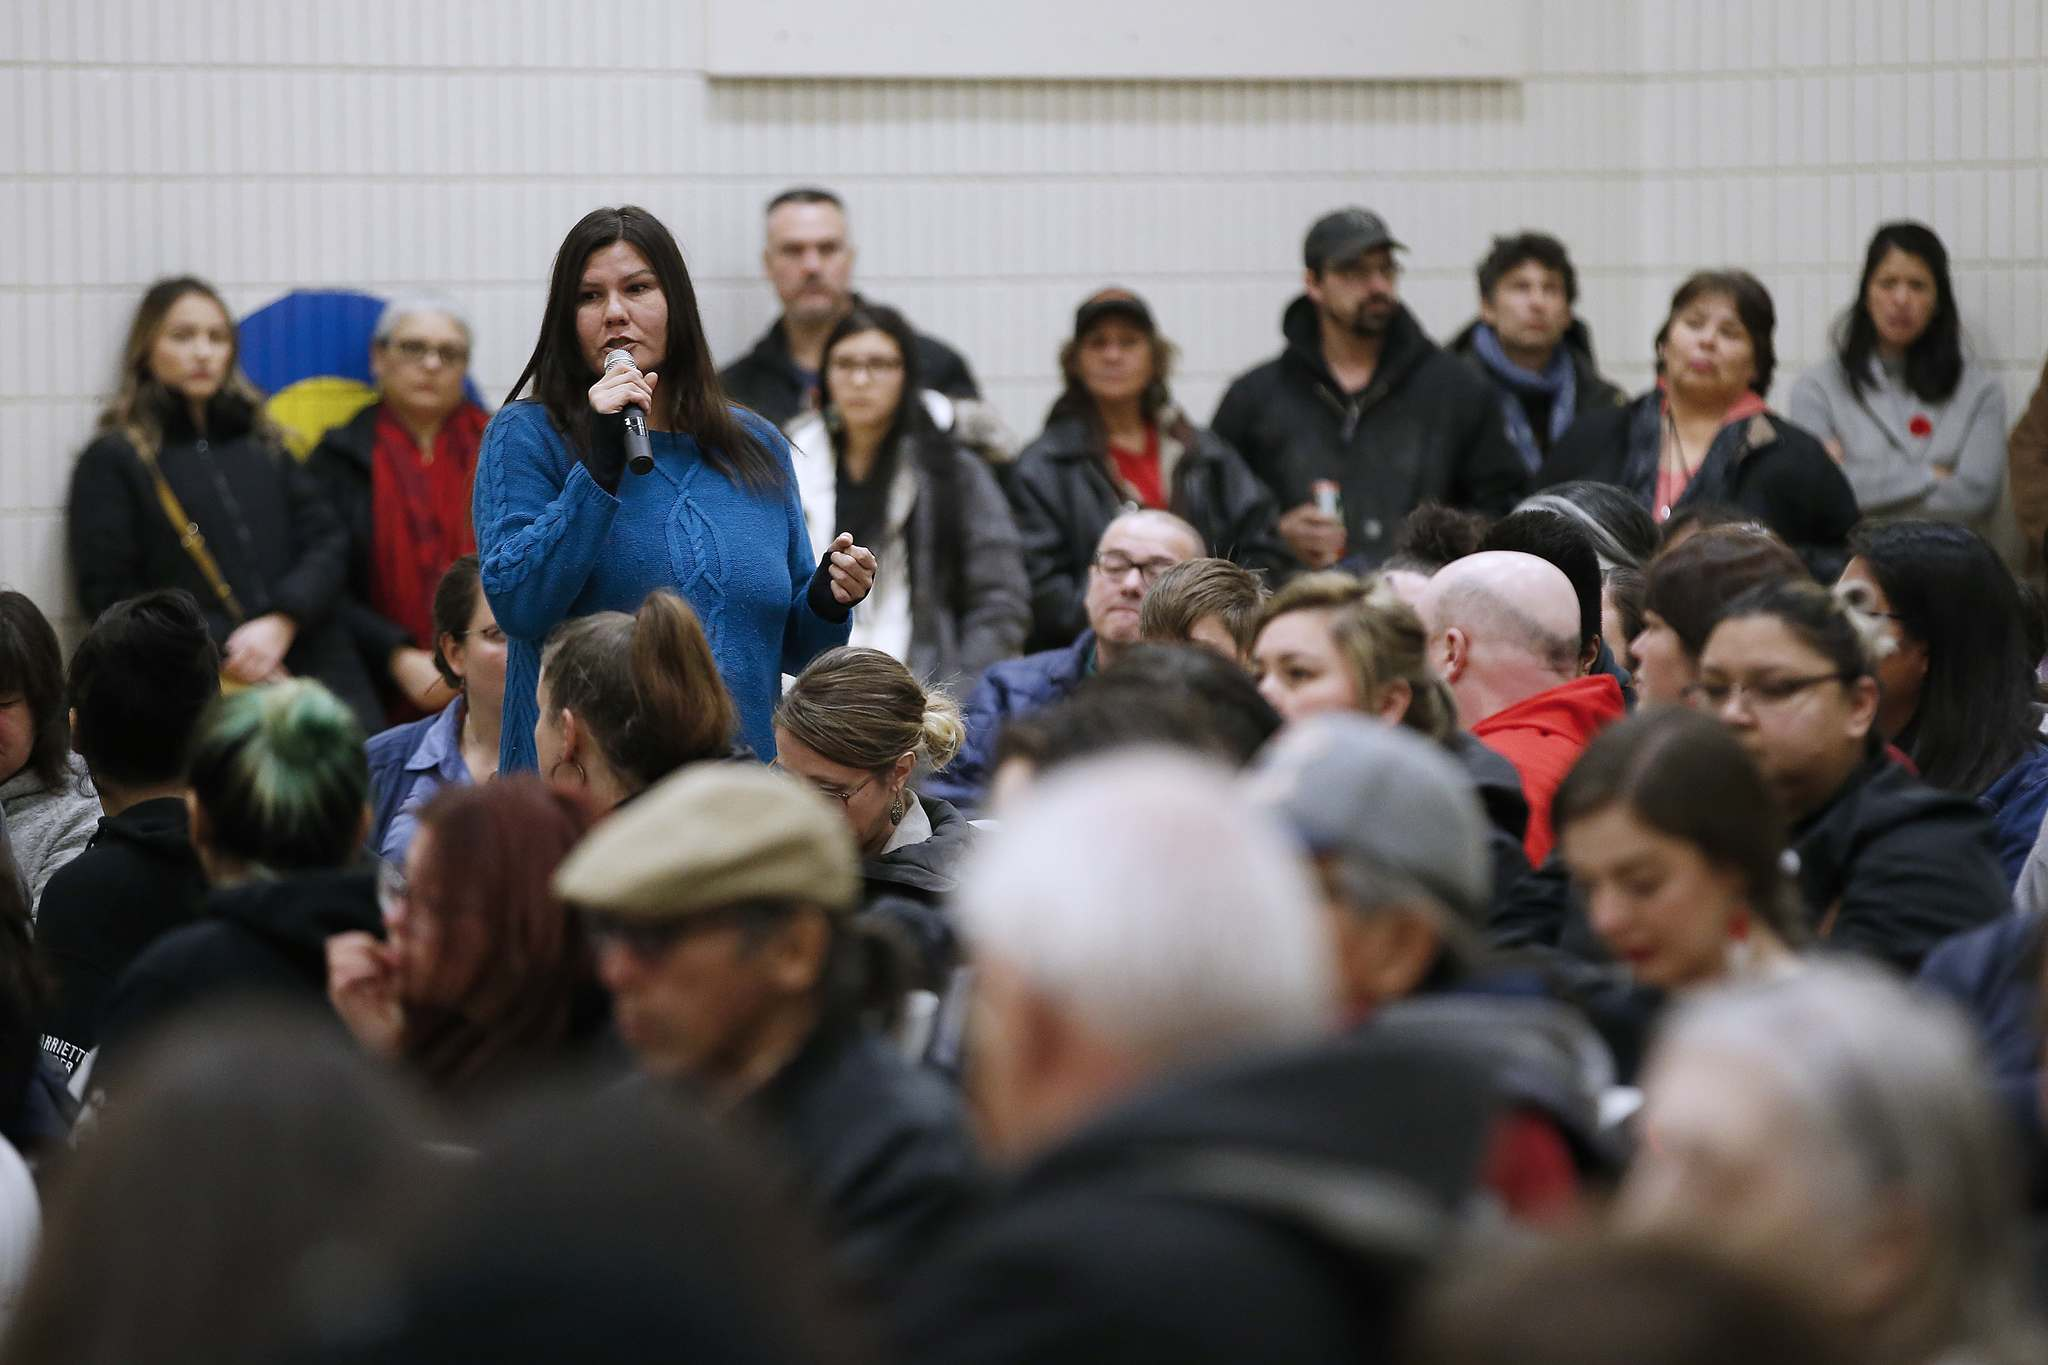 <p>Community member, Sabrina, speaks at a community gathering organized to talk about community issues at William Whyte School in Winnipeg's North End Wednesday.</p>